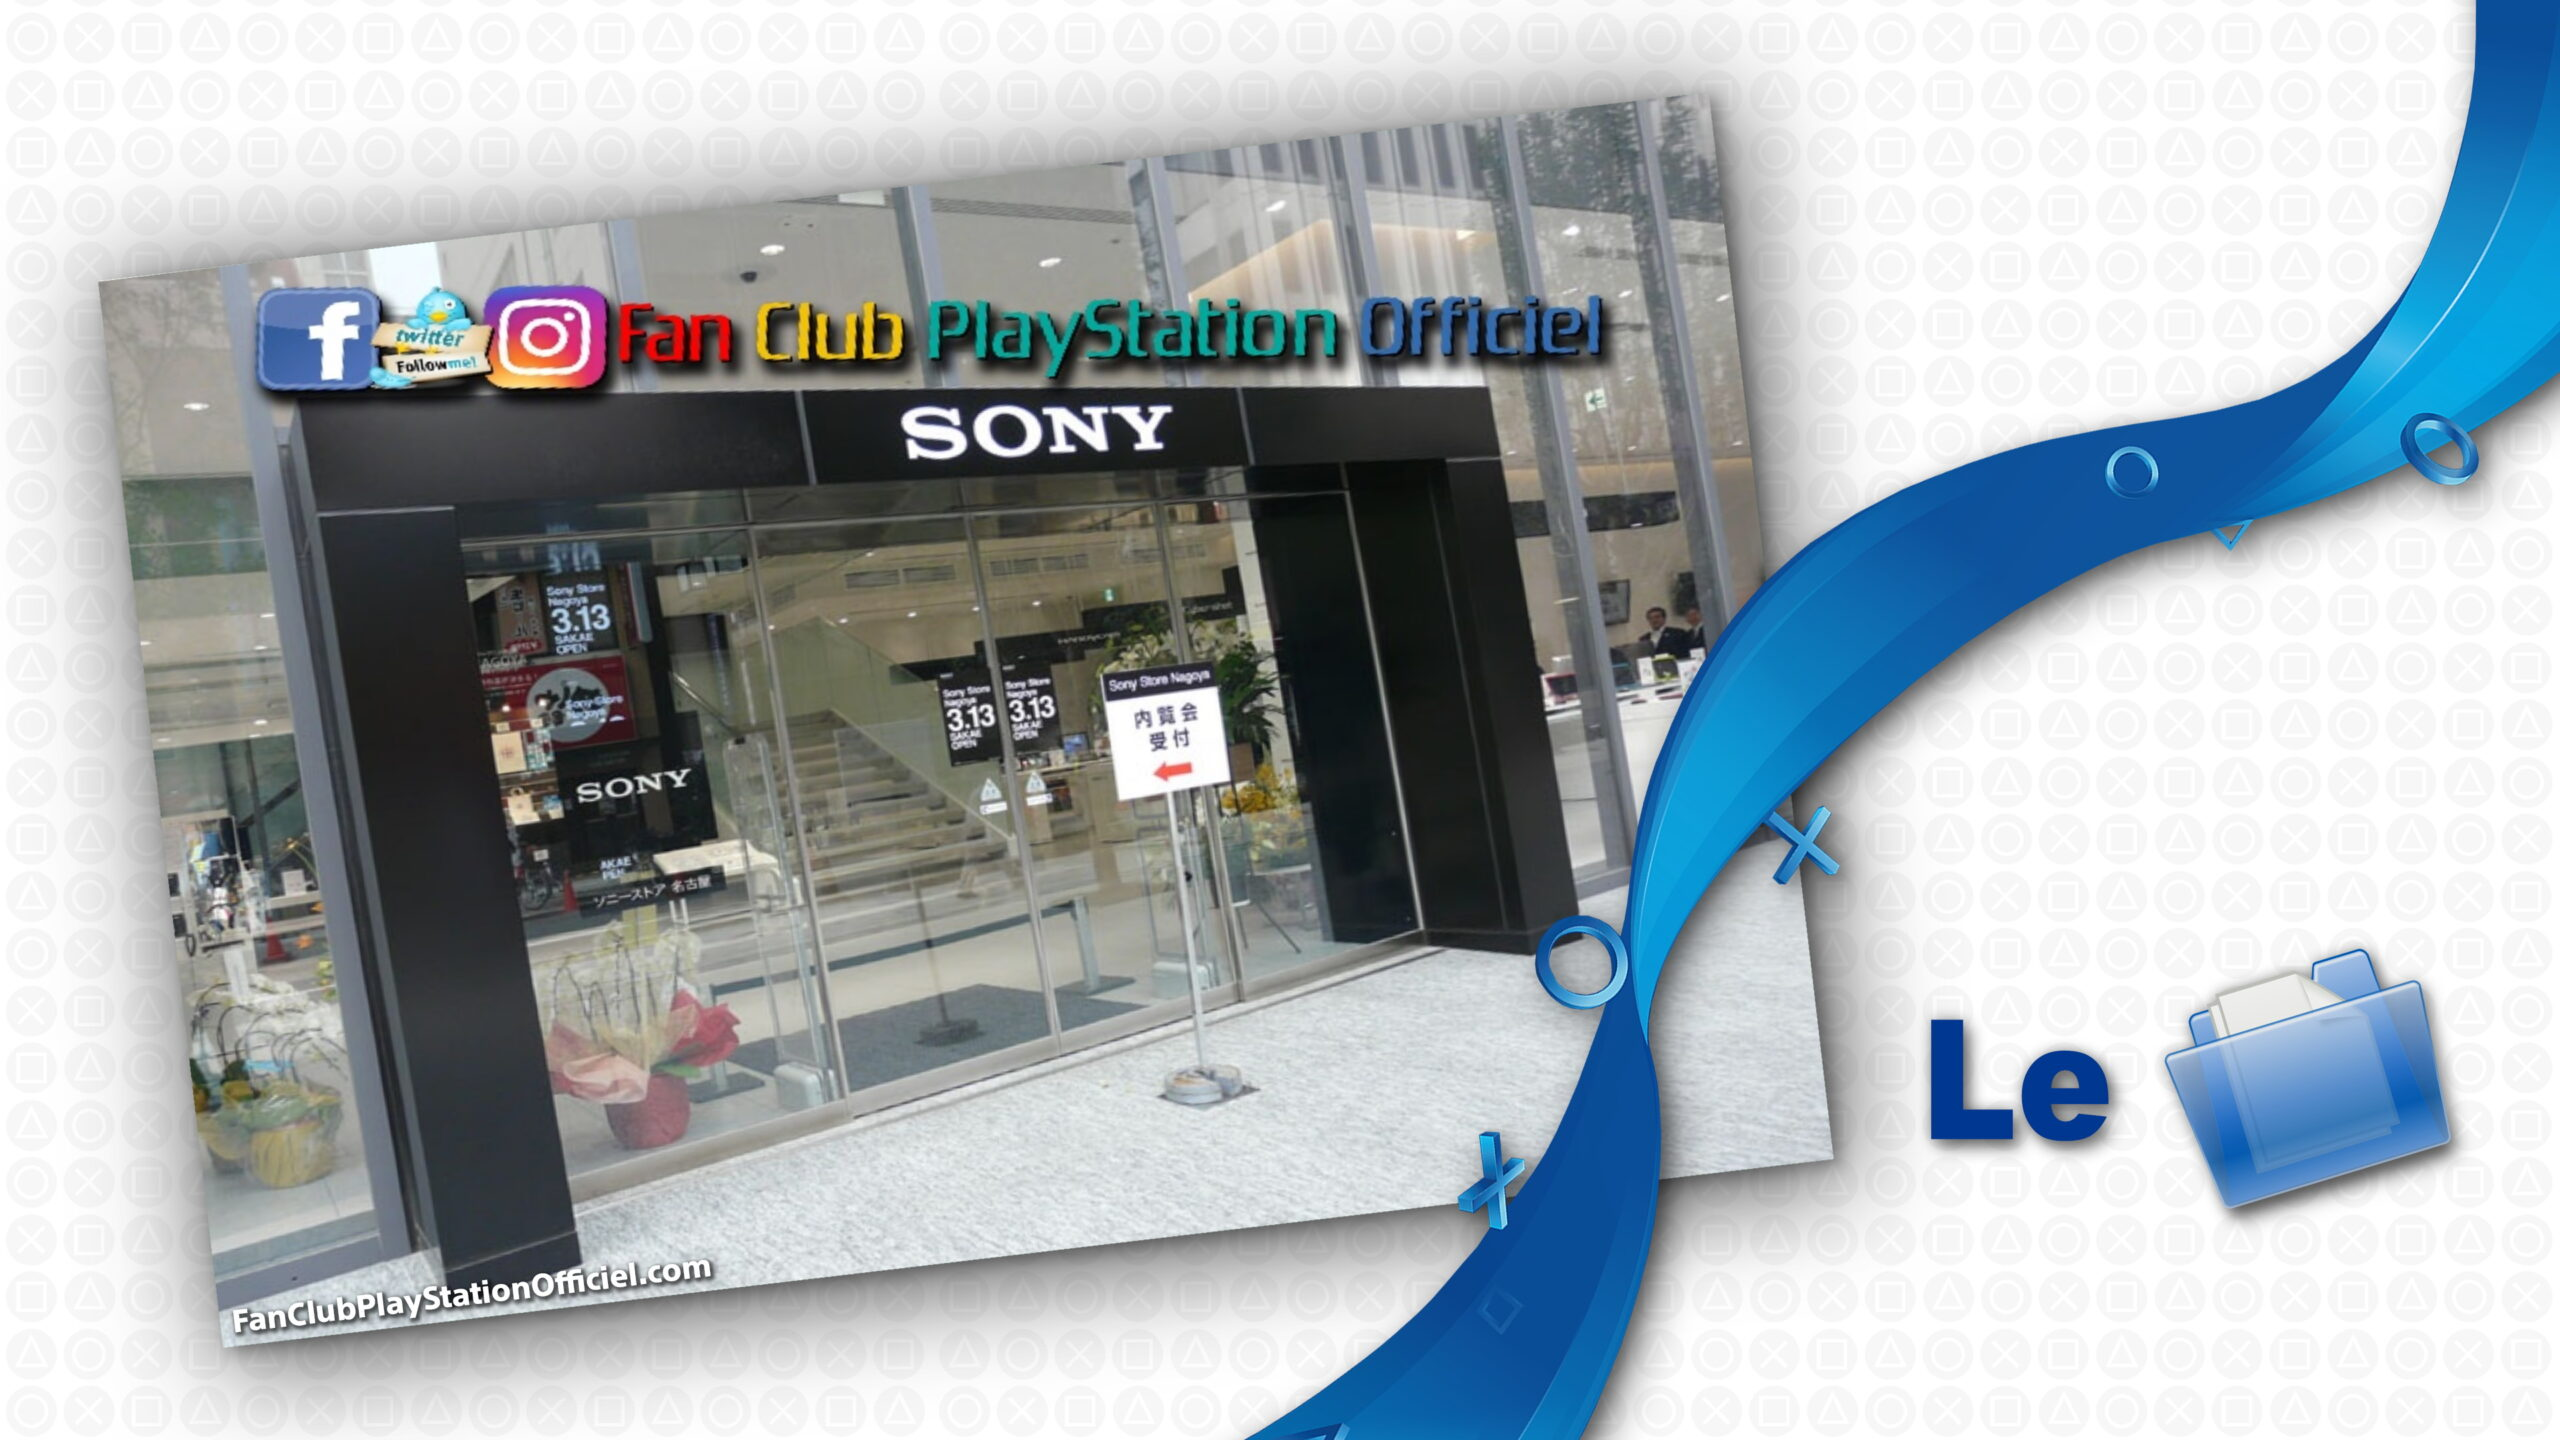 Les Sony Store